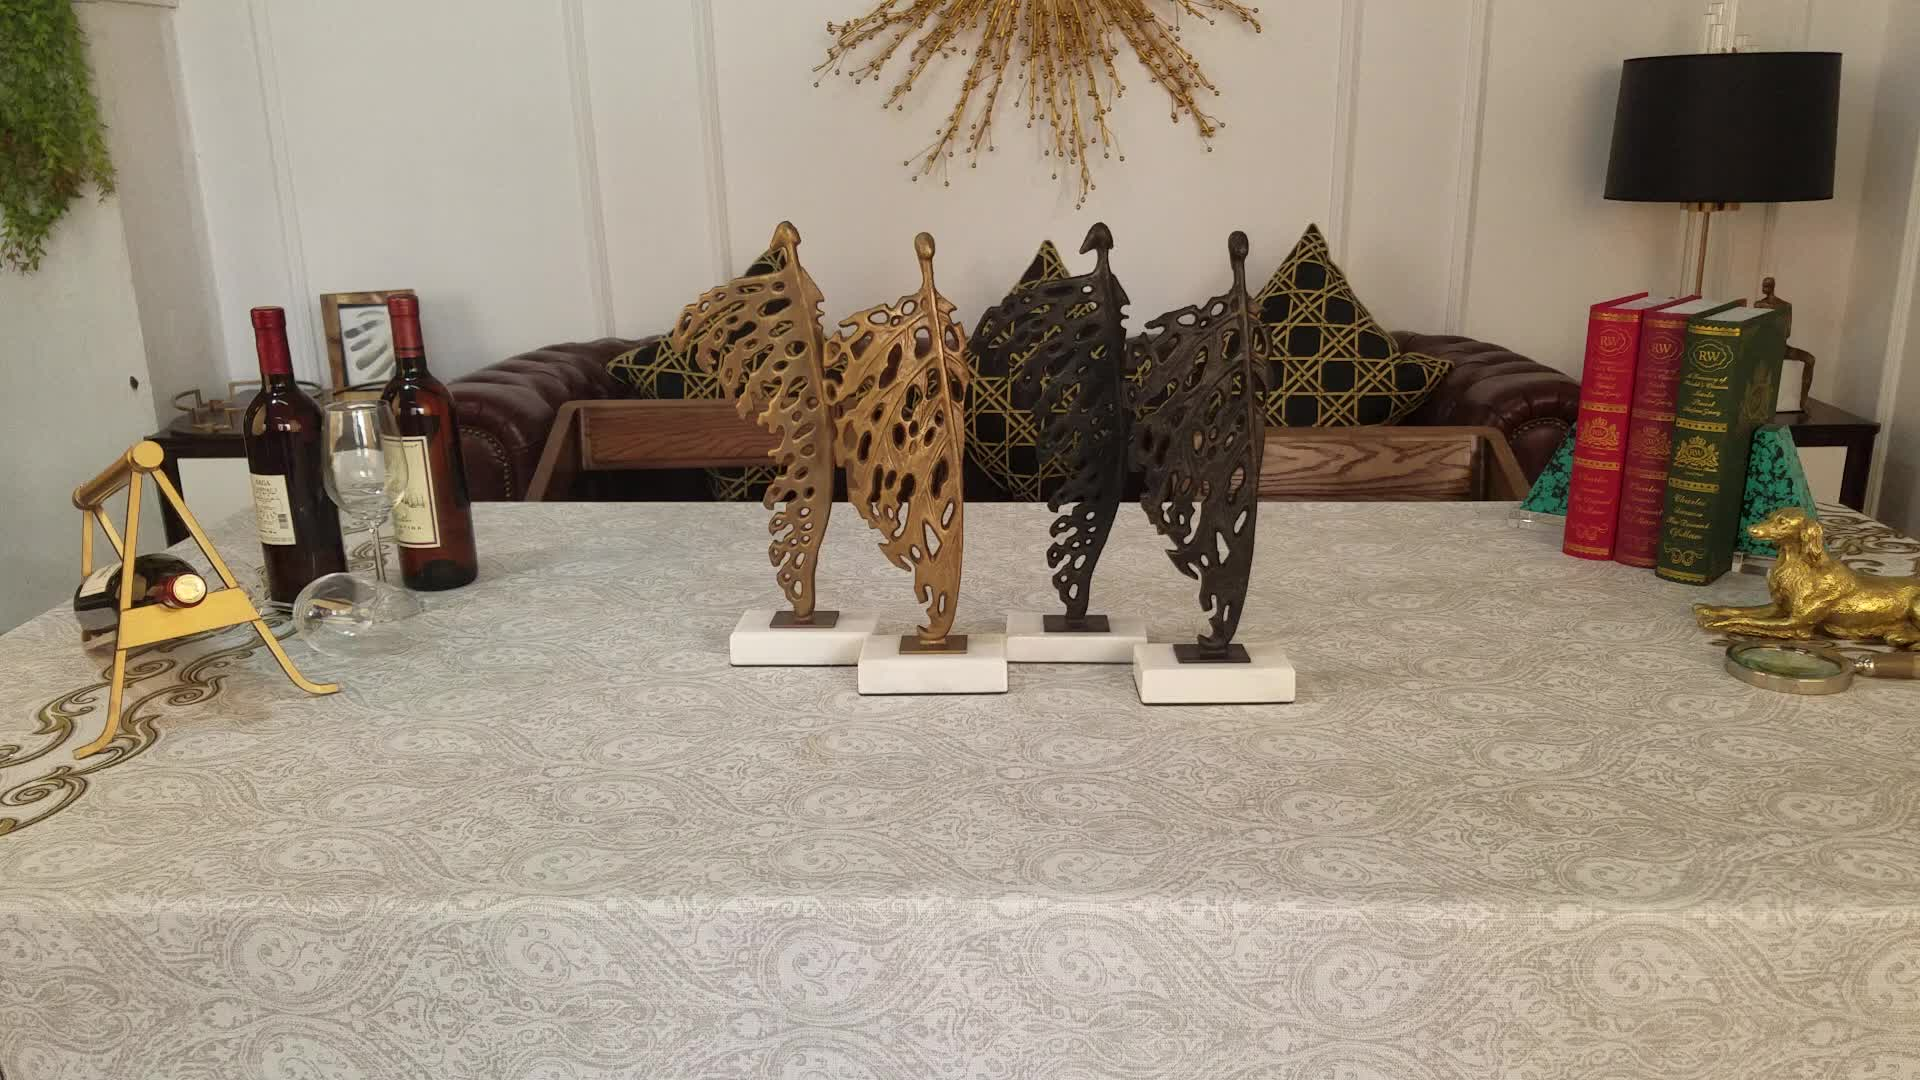 Home decorative table metal craft items couple sculpture for living room